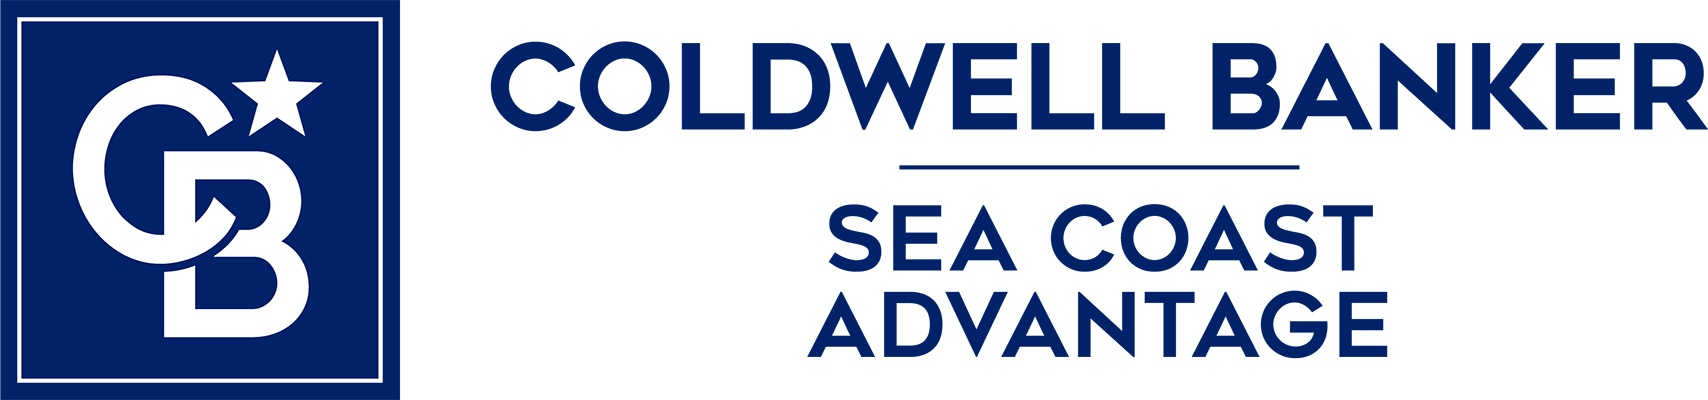 Daniel Adams - Coldwell Banker Sea Coast Advantage Realty